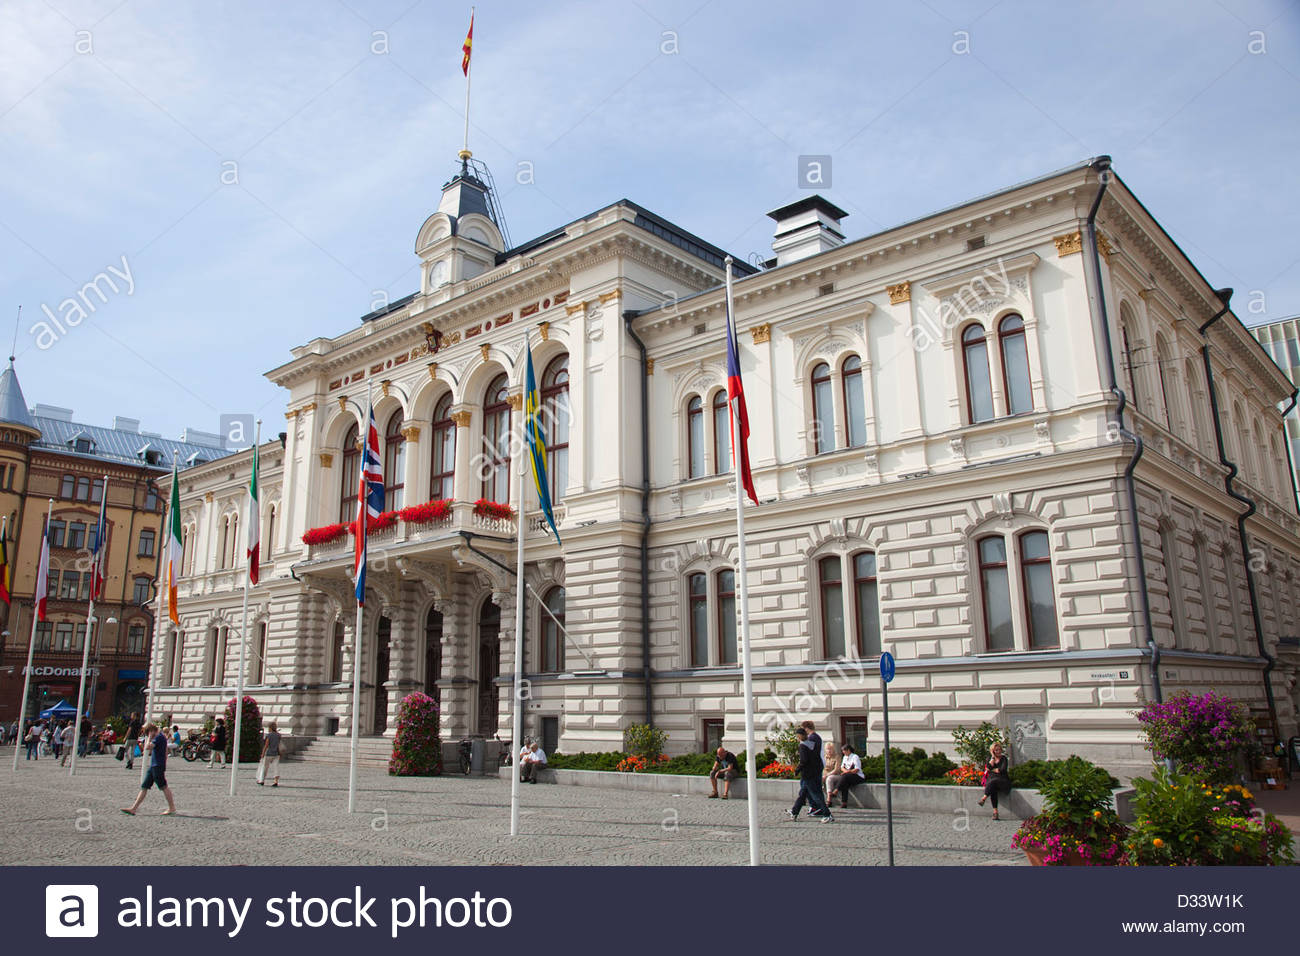 the city hall,central square,tampere,finland,europe - Stock Image